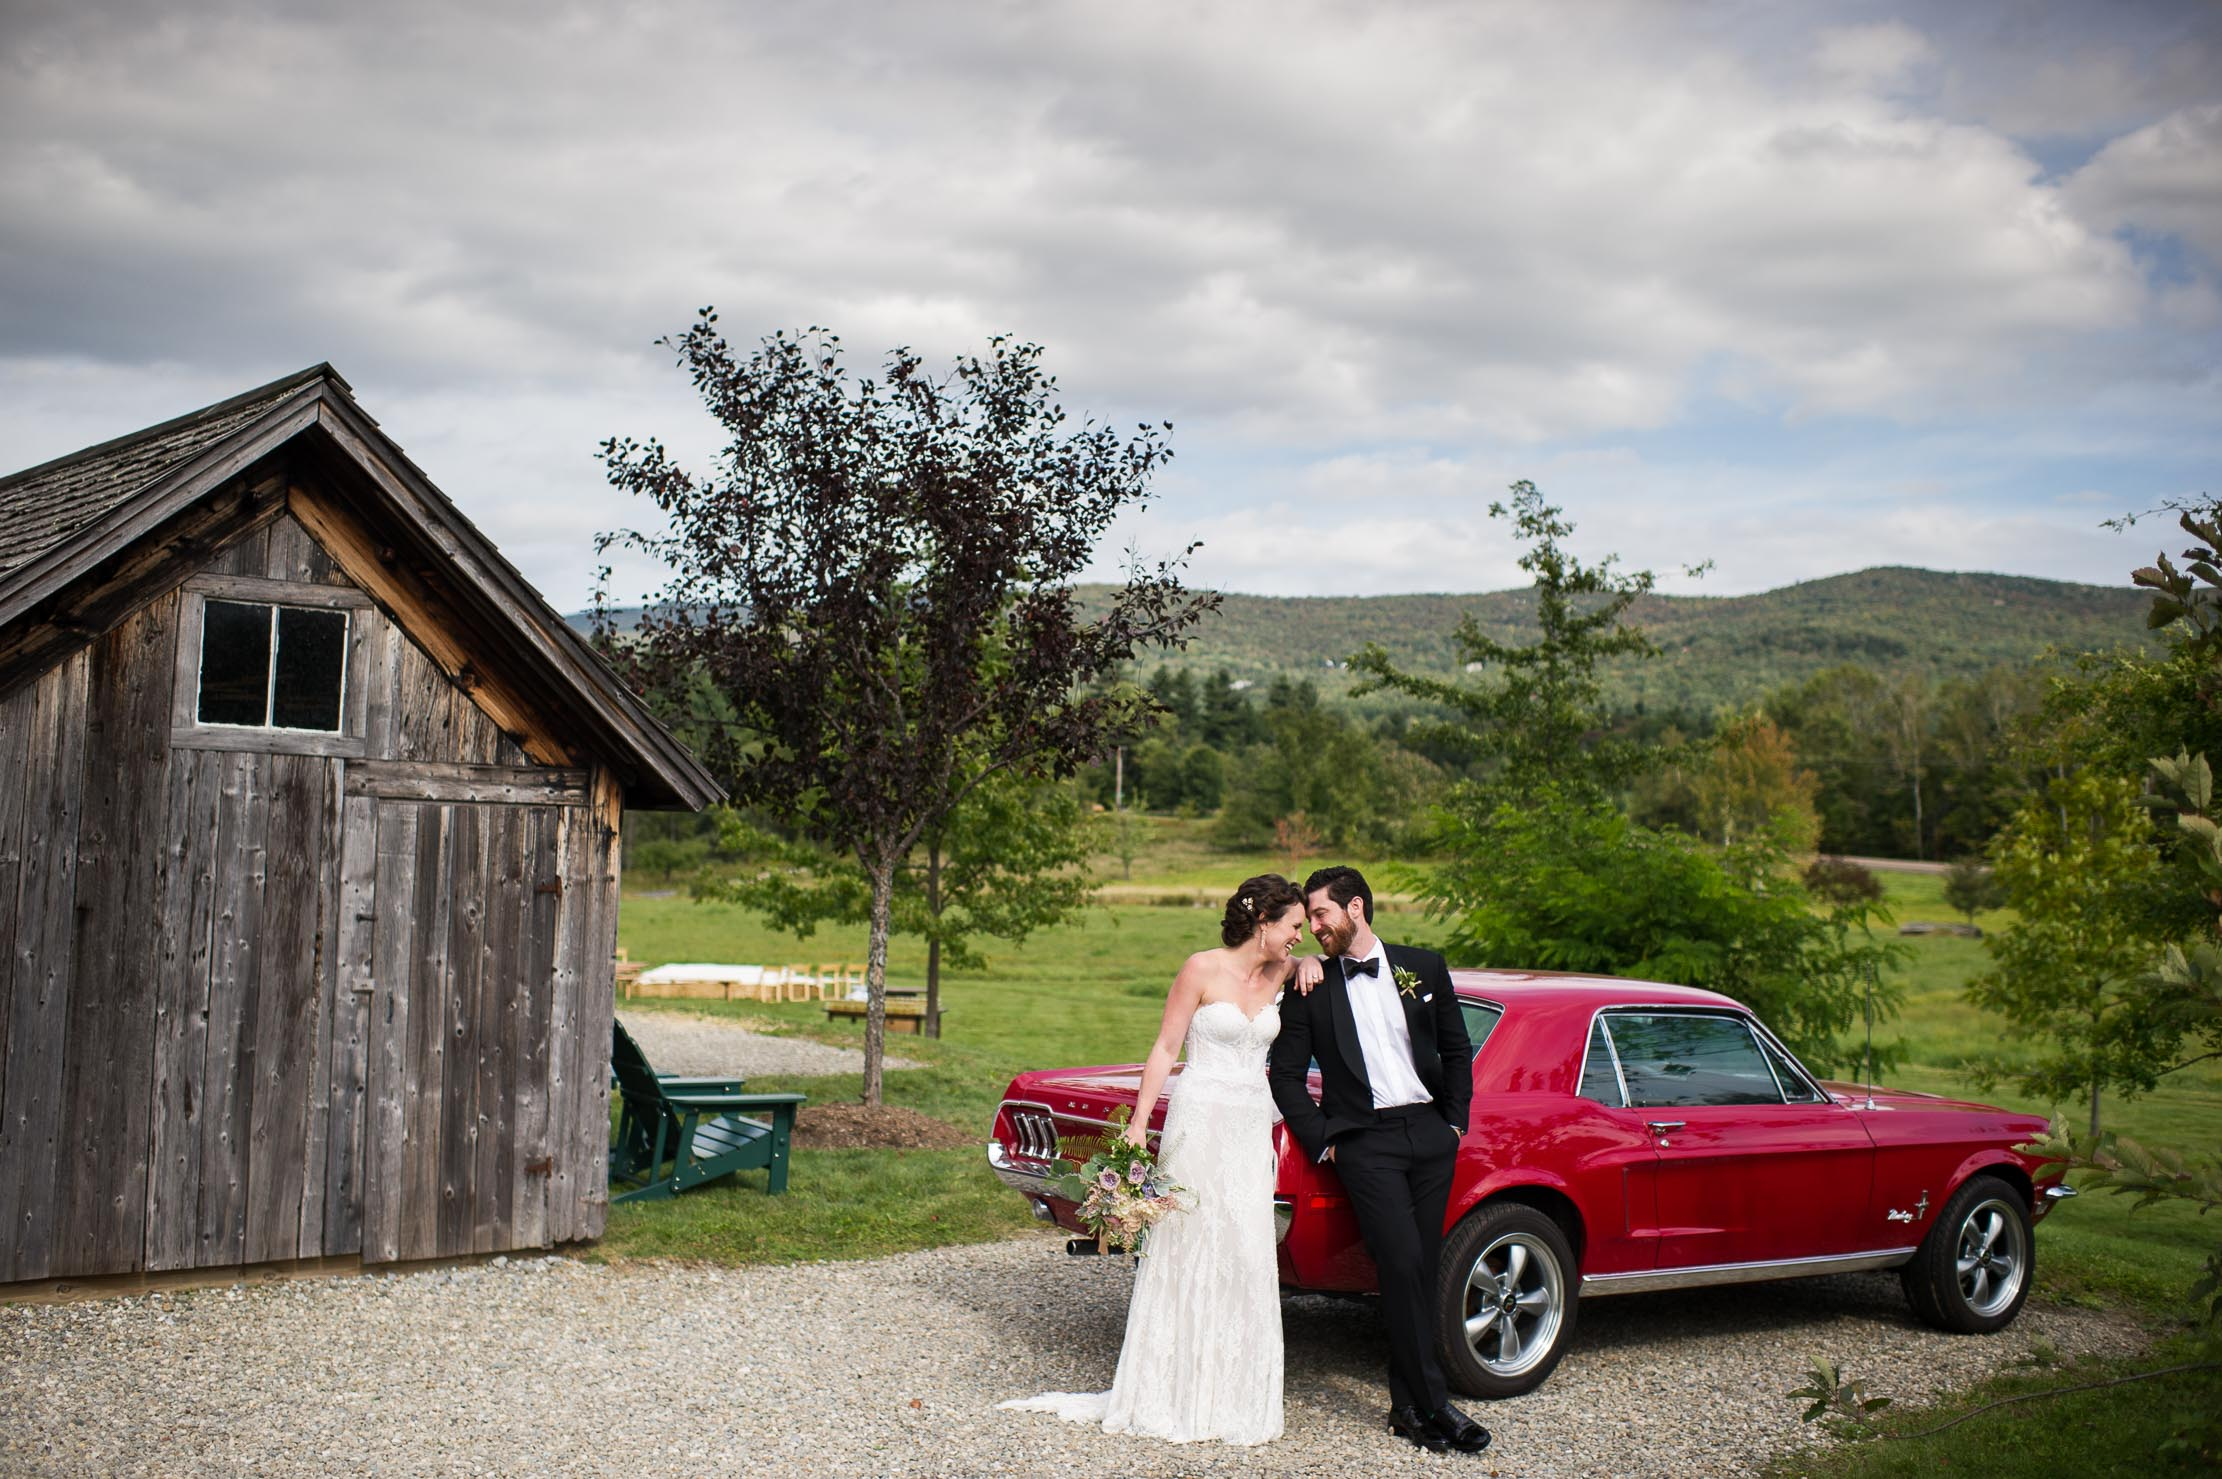 VERMONT-BARN-NYC-WEDDING-PHOTOGRAPHER-1040.jpg